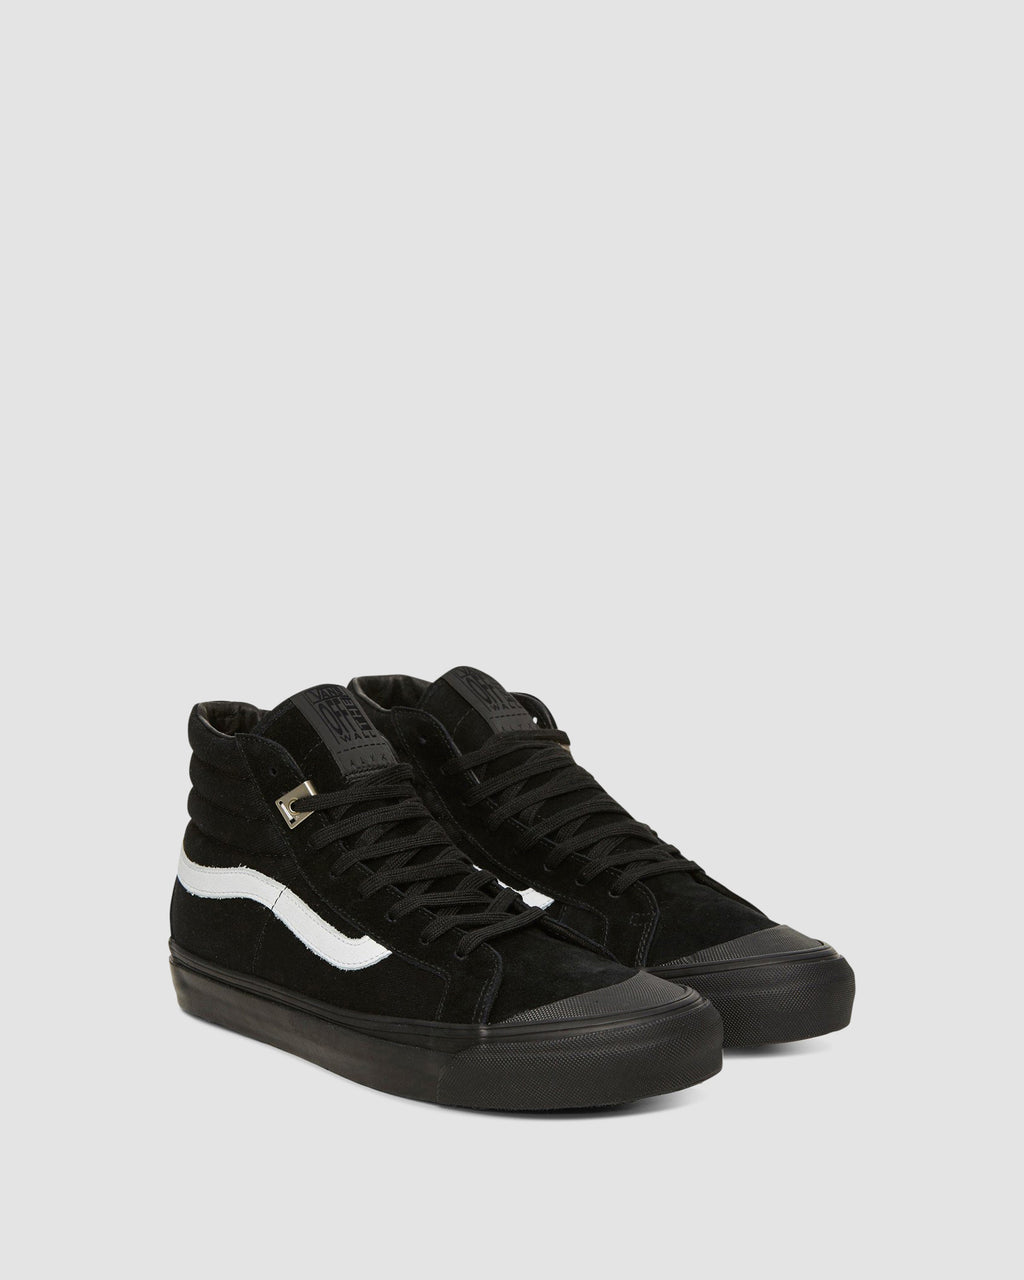 VANS OG 138 SK8 HIGH BLACK – alyx df70eb12a